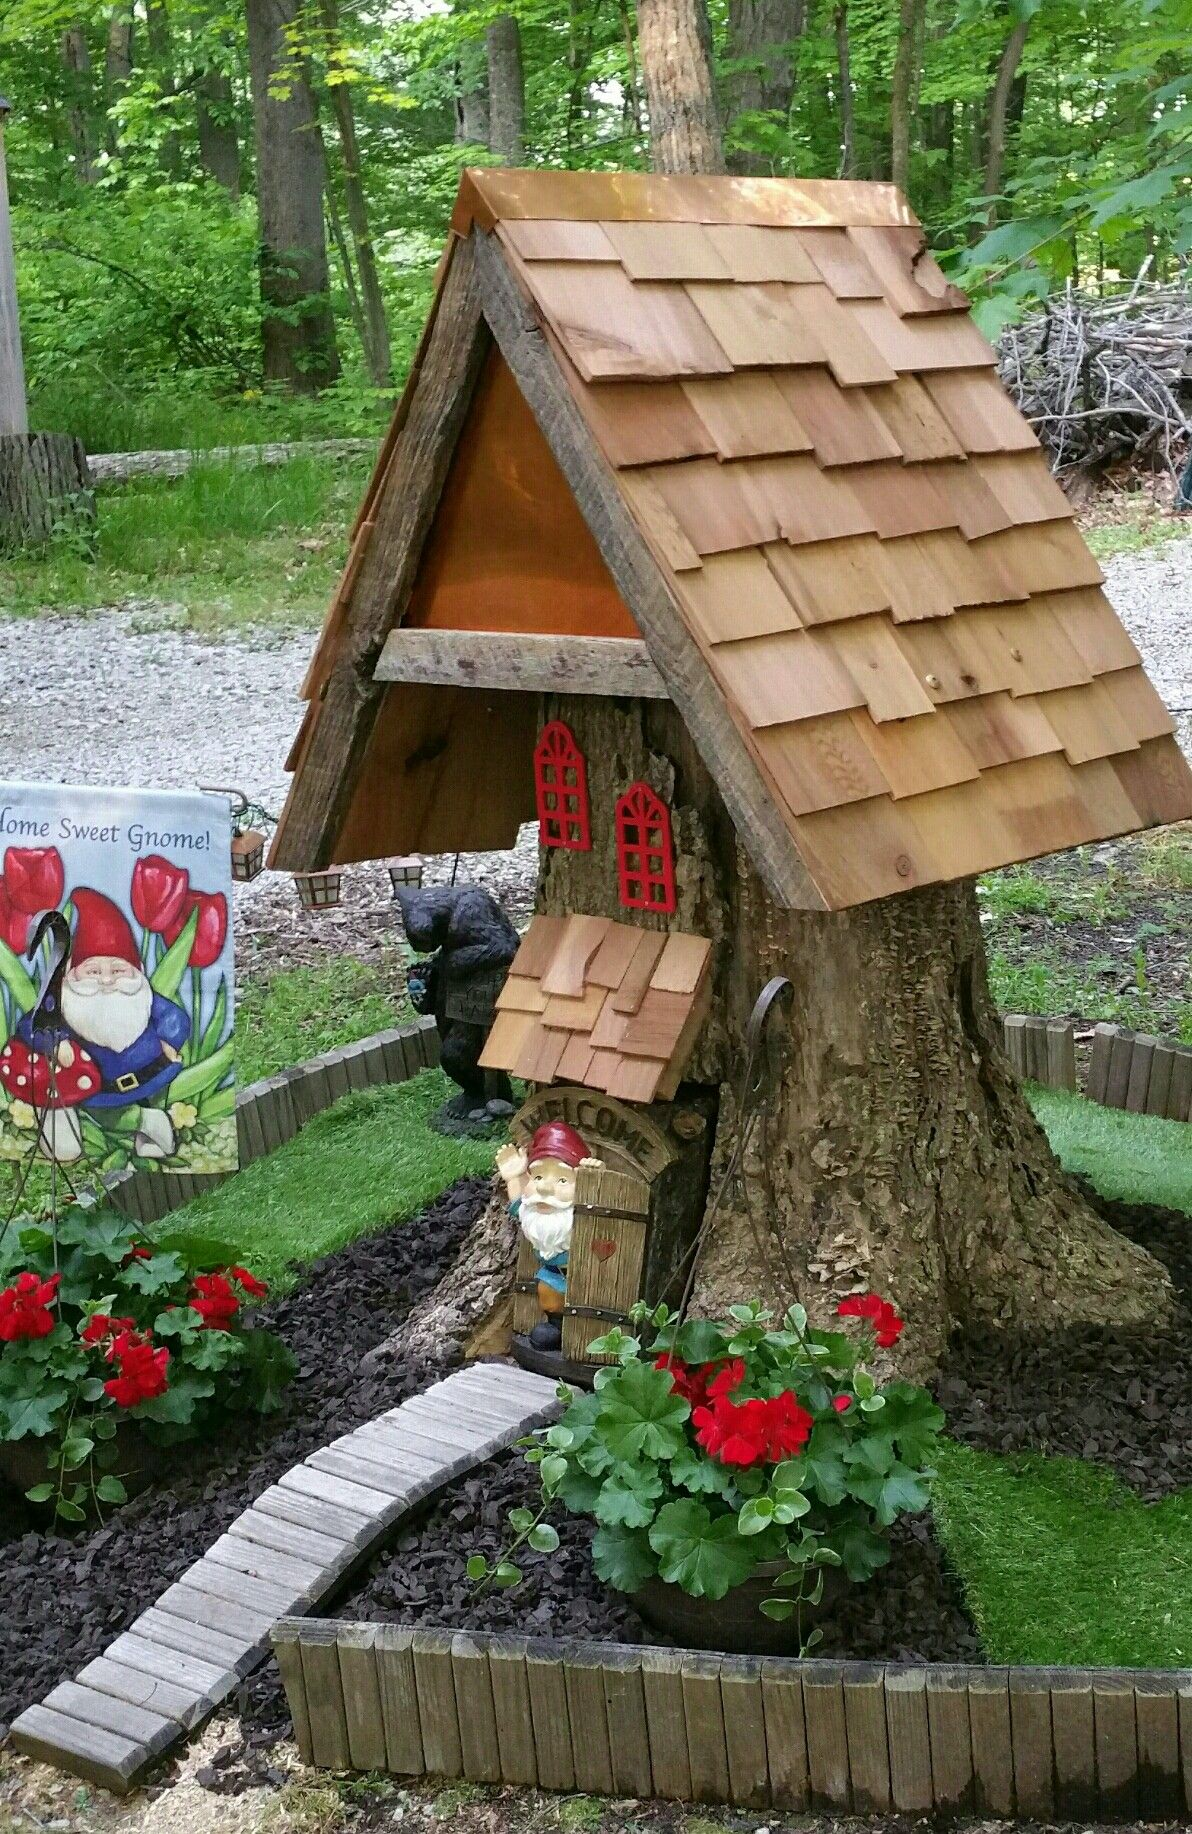 Garten Vogelhaus Gnome House From A Tree Stump Home Sweet Gnome